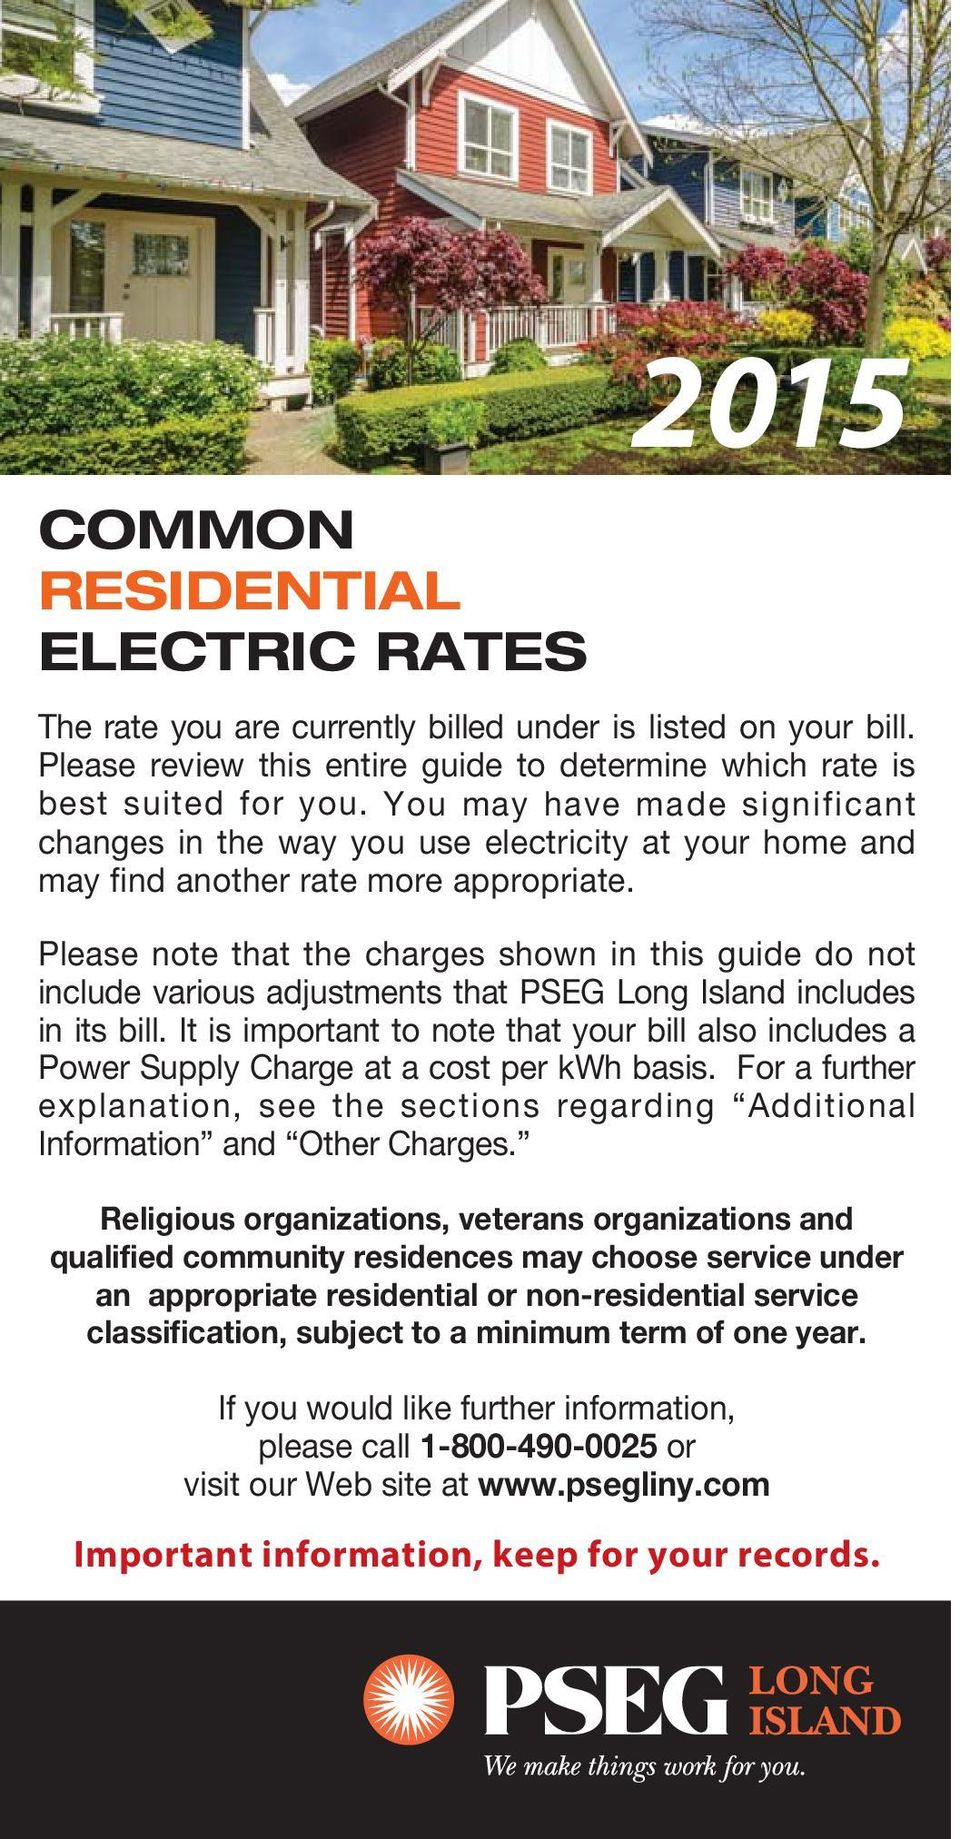 Please note that the charges shown in this guide do not include various adjustments that PSEG Long Island includes in its bill.